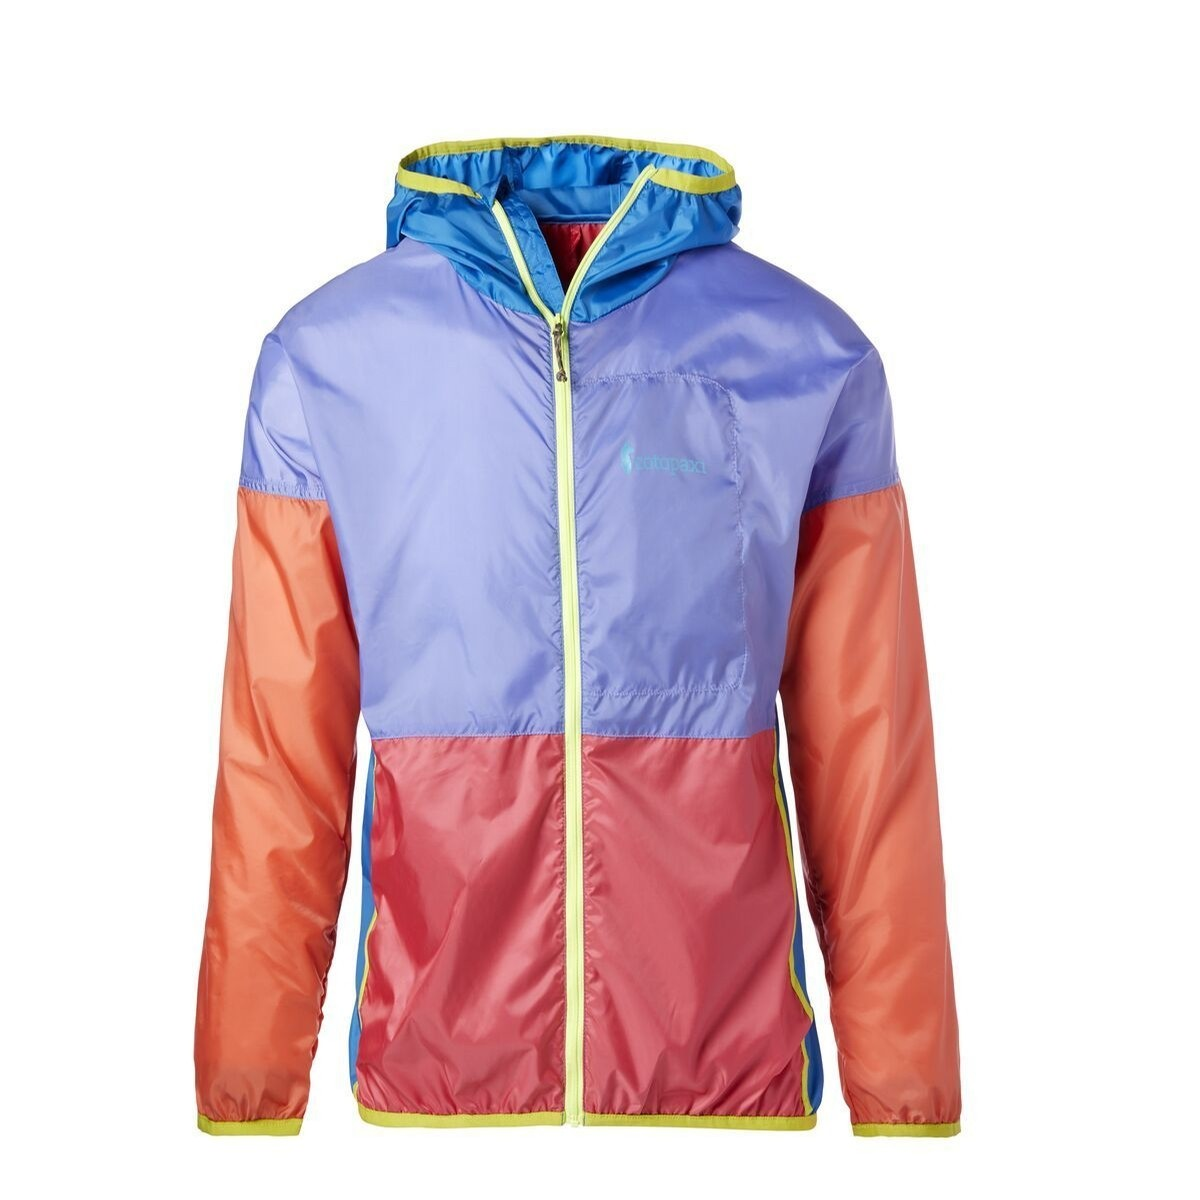 Teca Windbreaker Full Zip Unisex (Berry/Berry)